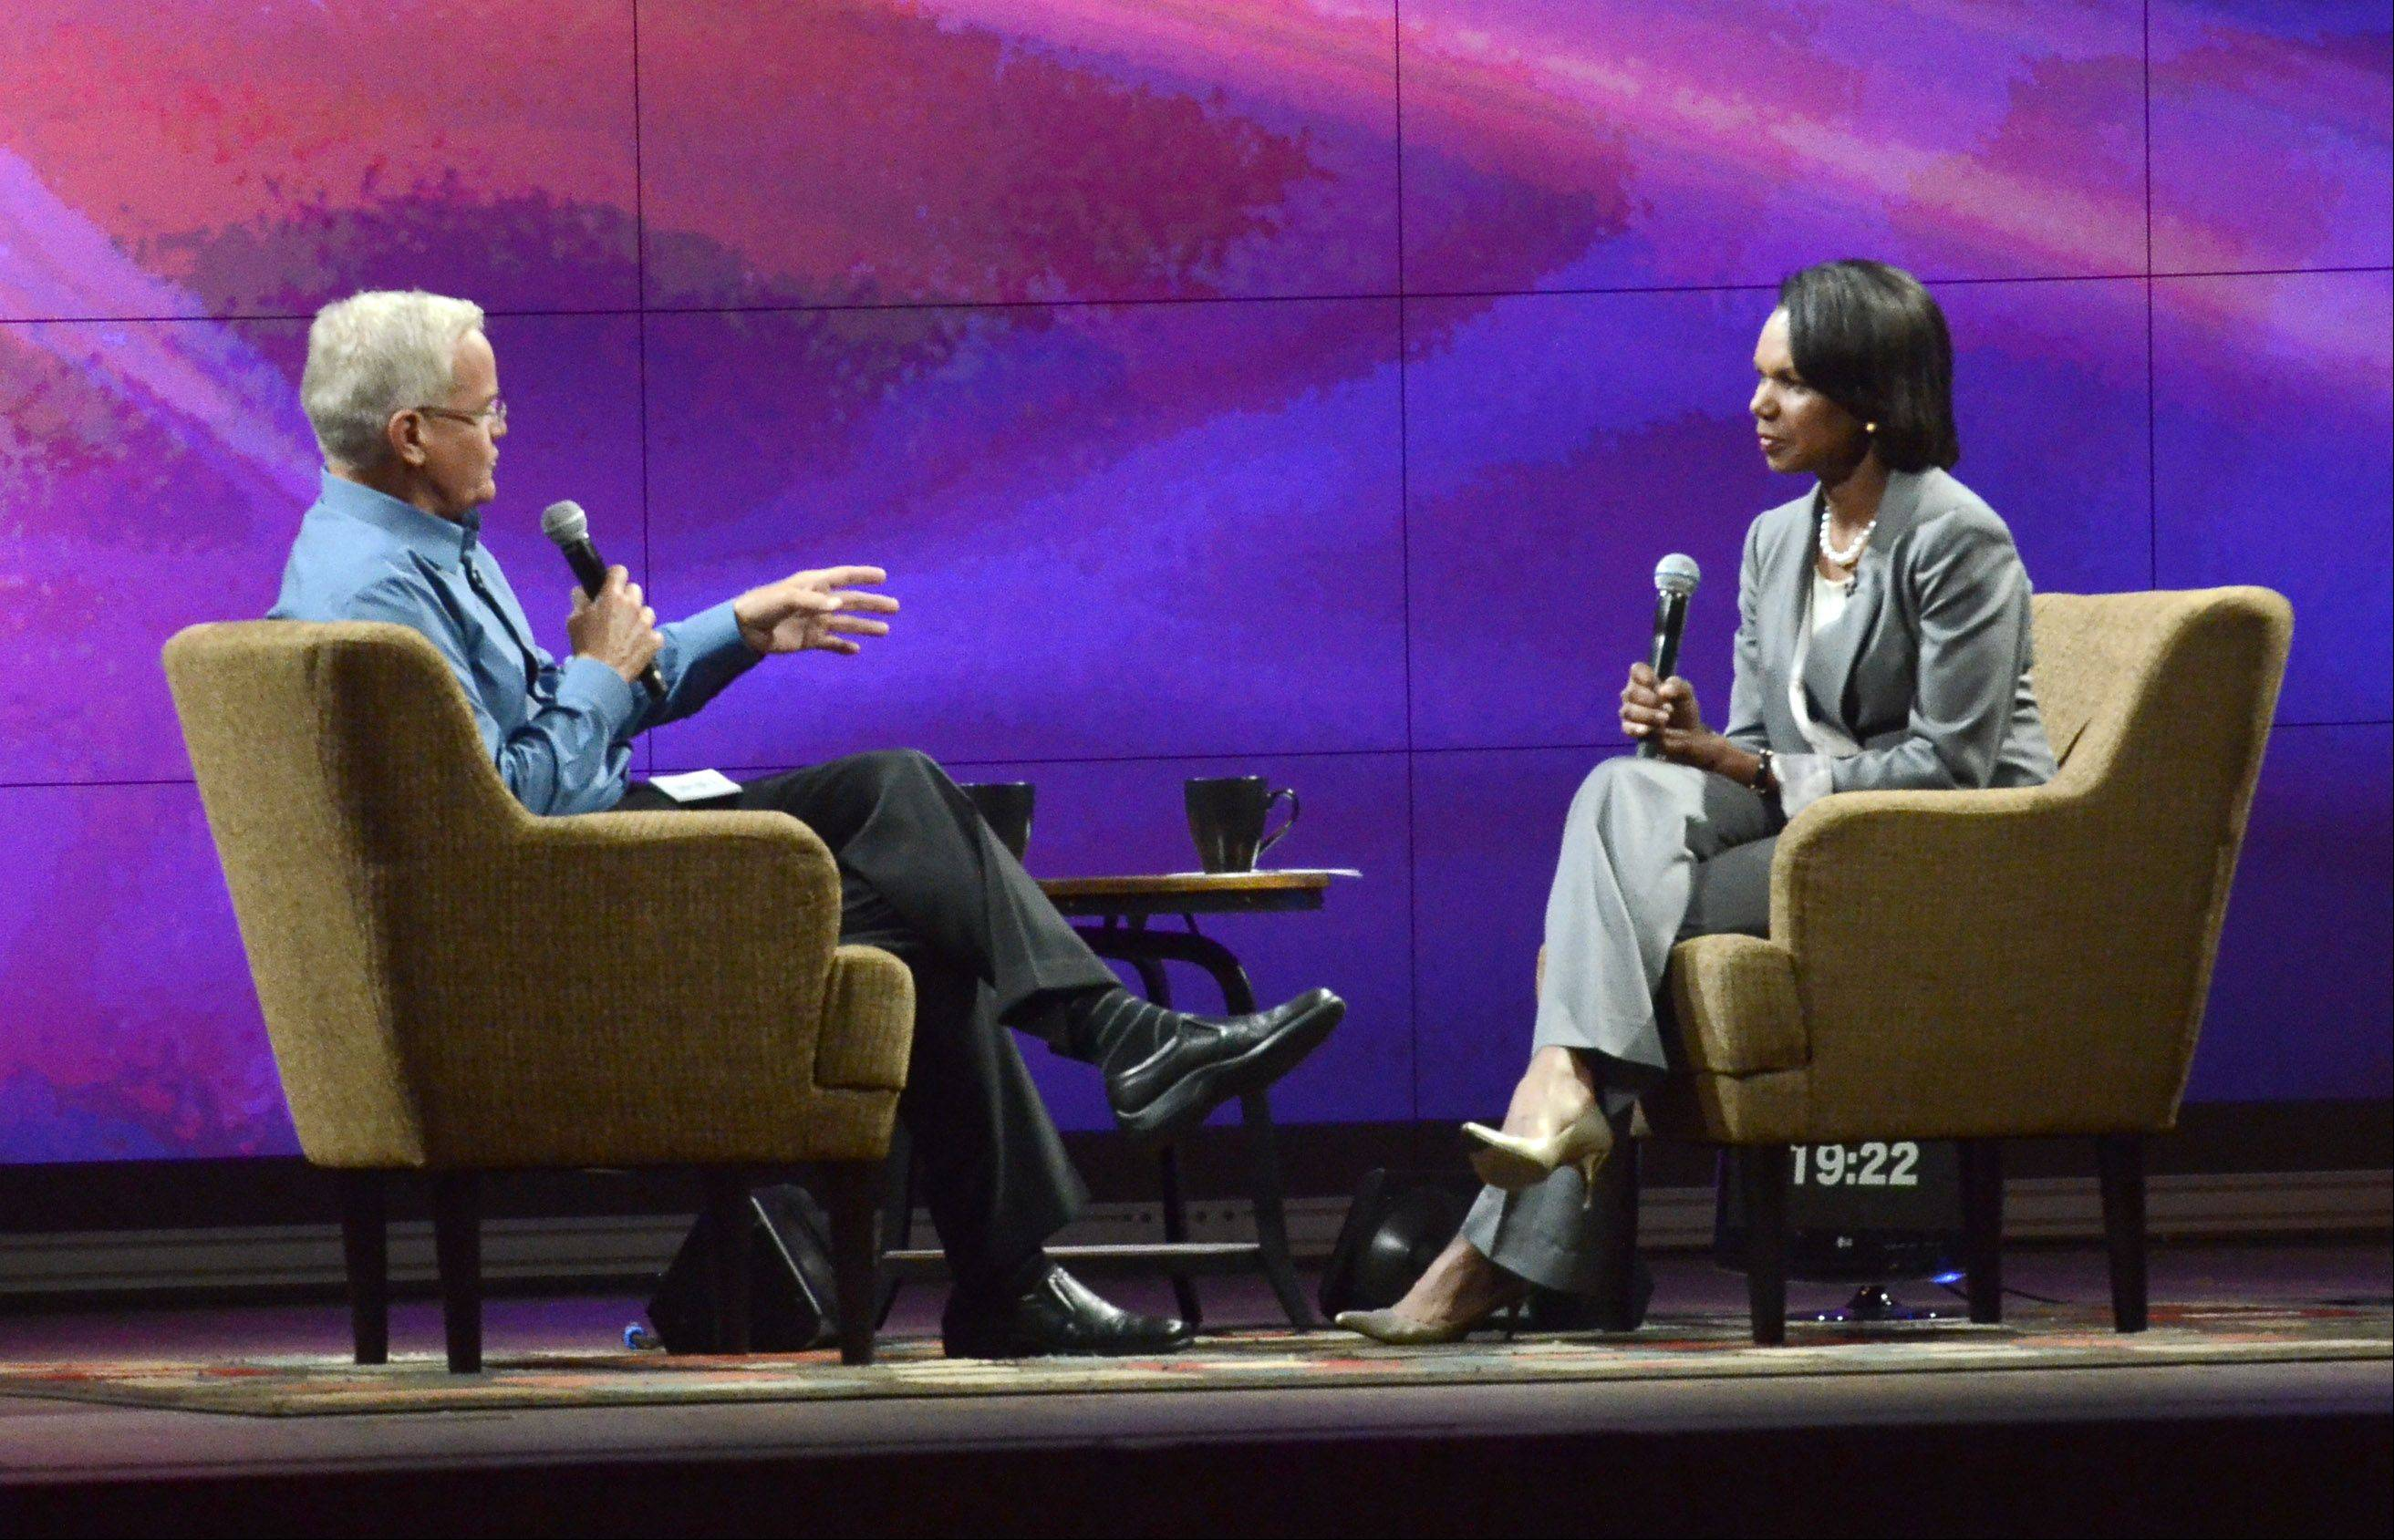 Bill Hybels, founding and senior pastor at Willow Creek Community Church, interviews former U.S. Secretary of State Condoleezza Rice after she spoke at the Global Leadership Summit Thursday in South Barrington.